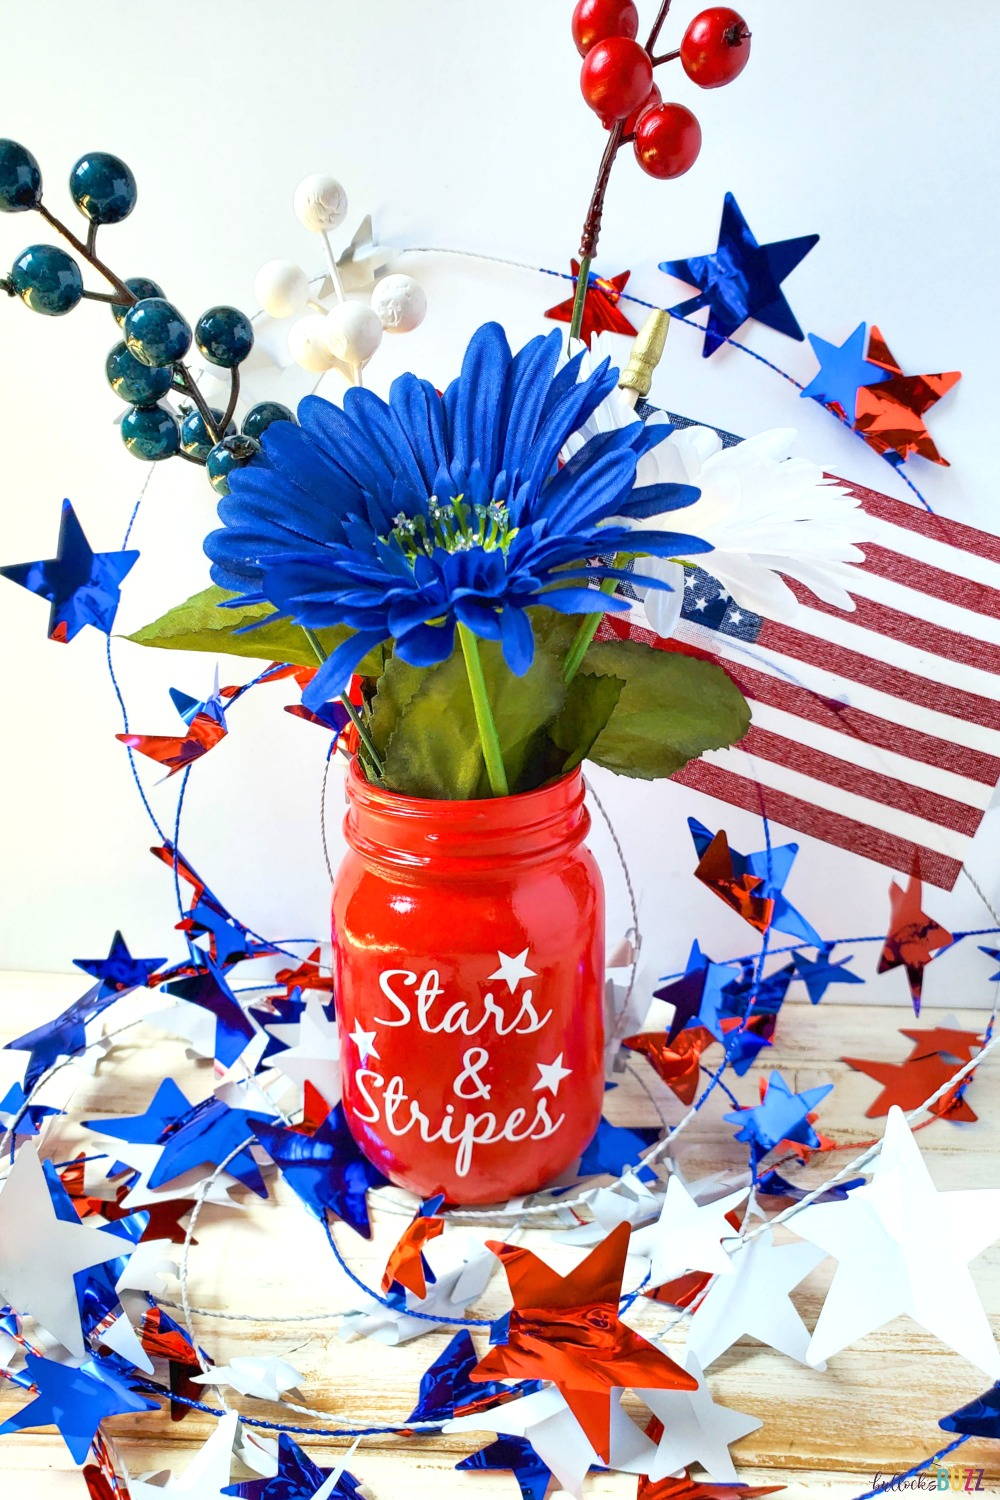 Your area will be transformed by this simple DIY Patriotic Mason Jar Centerpiece! This mason jar craft will add fun and festivity to your Fourth of July celebration! #crafts #patrioticcrafts